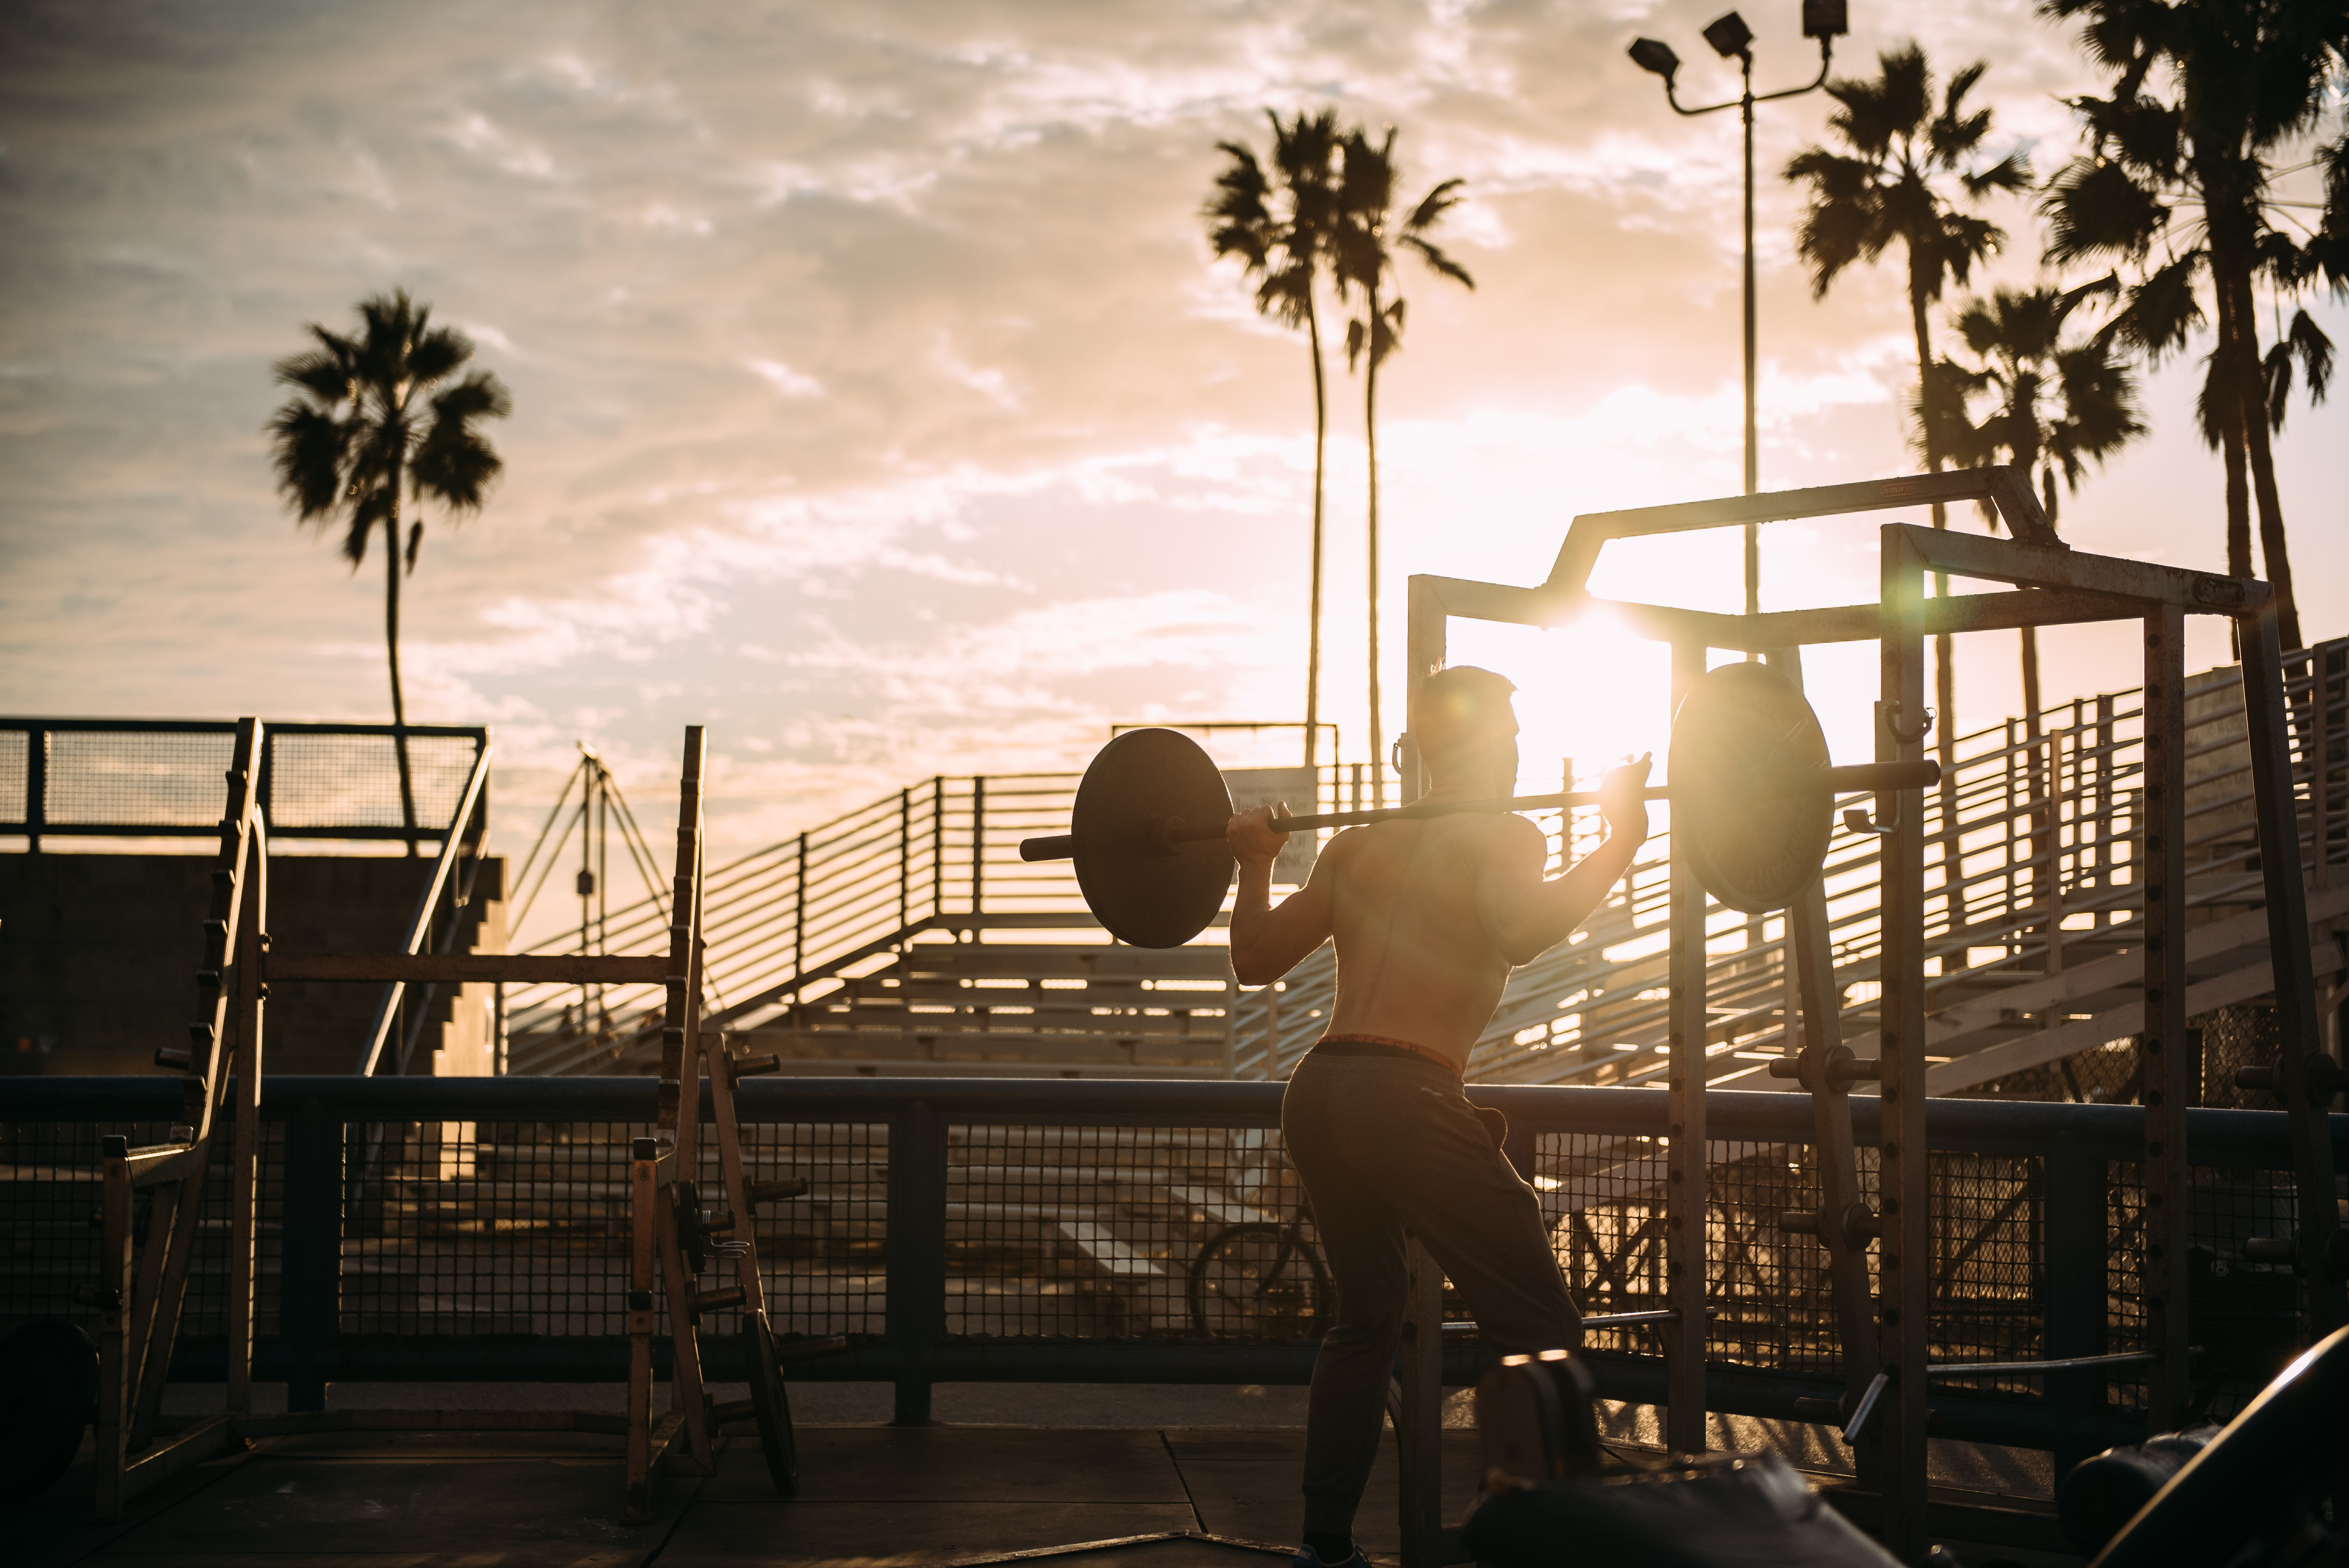 5 Fitness Podcasts